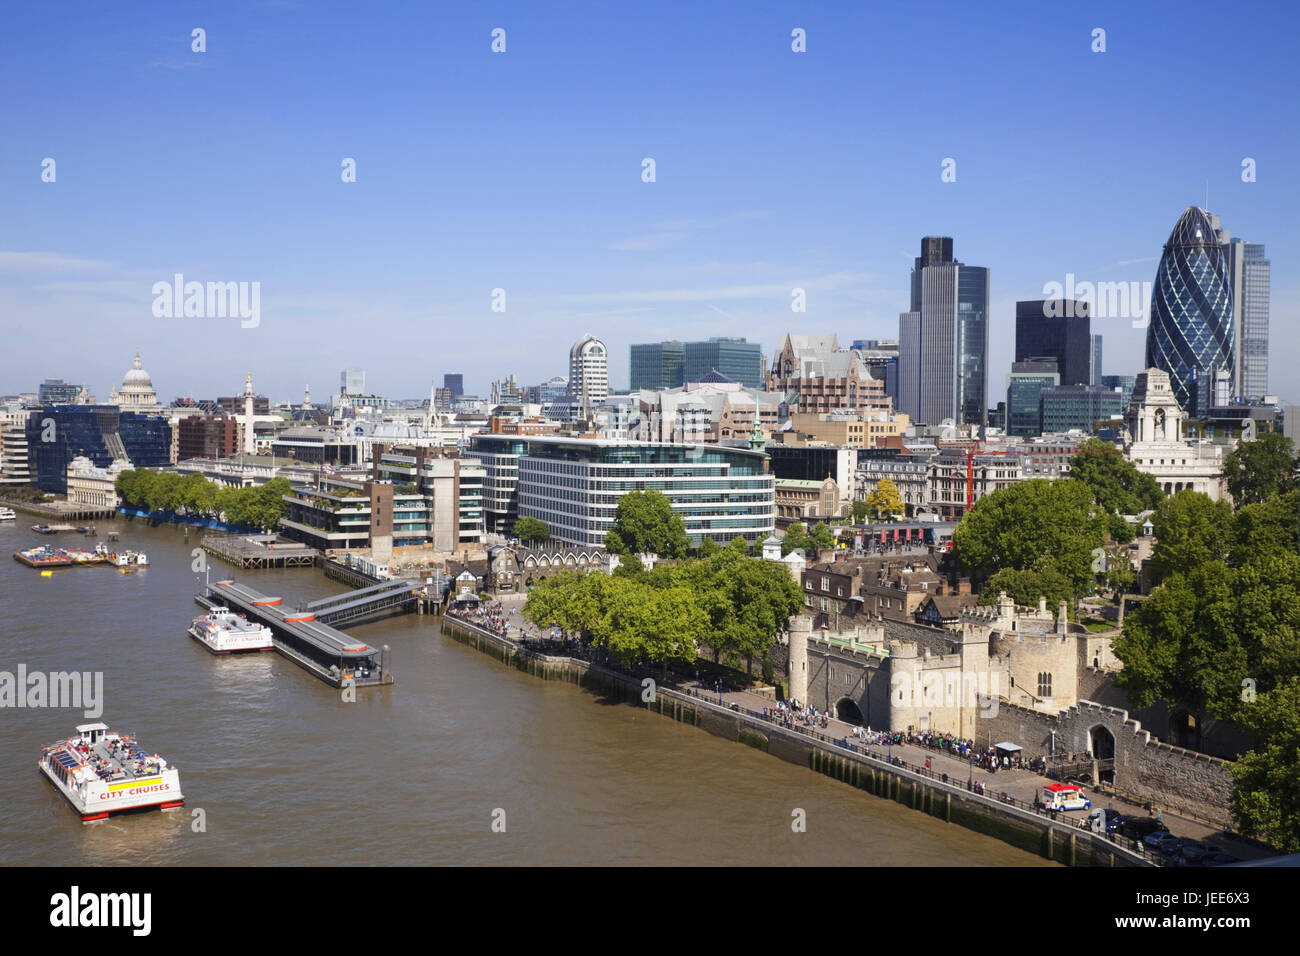 England, London, city skyline, view of Tower Bridge, the Thames, town view, town, river, skyline, ships, ship traffic, - Stock Image